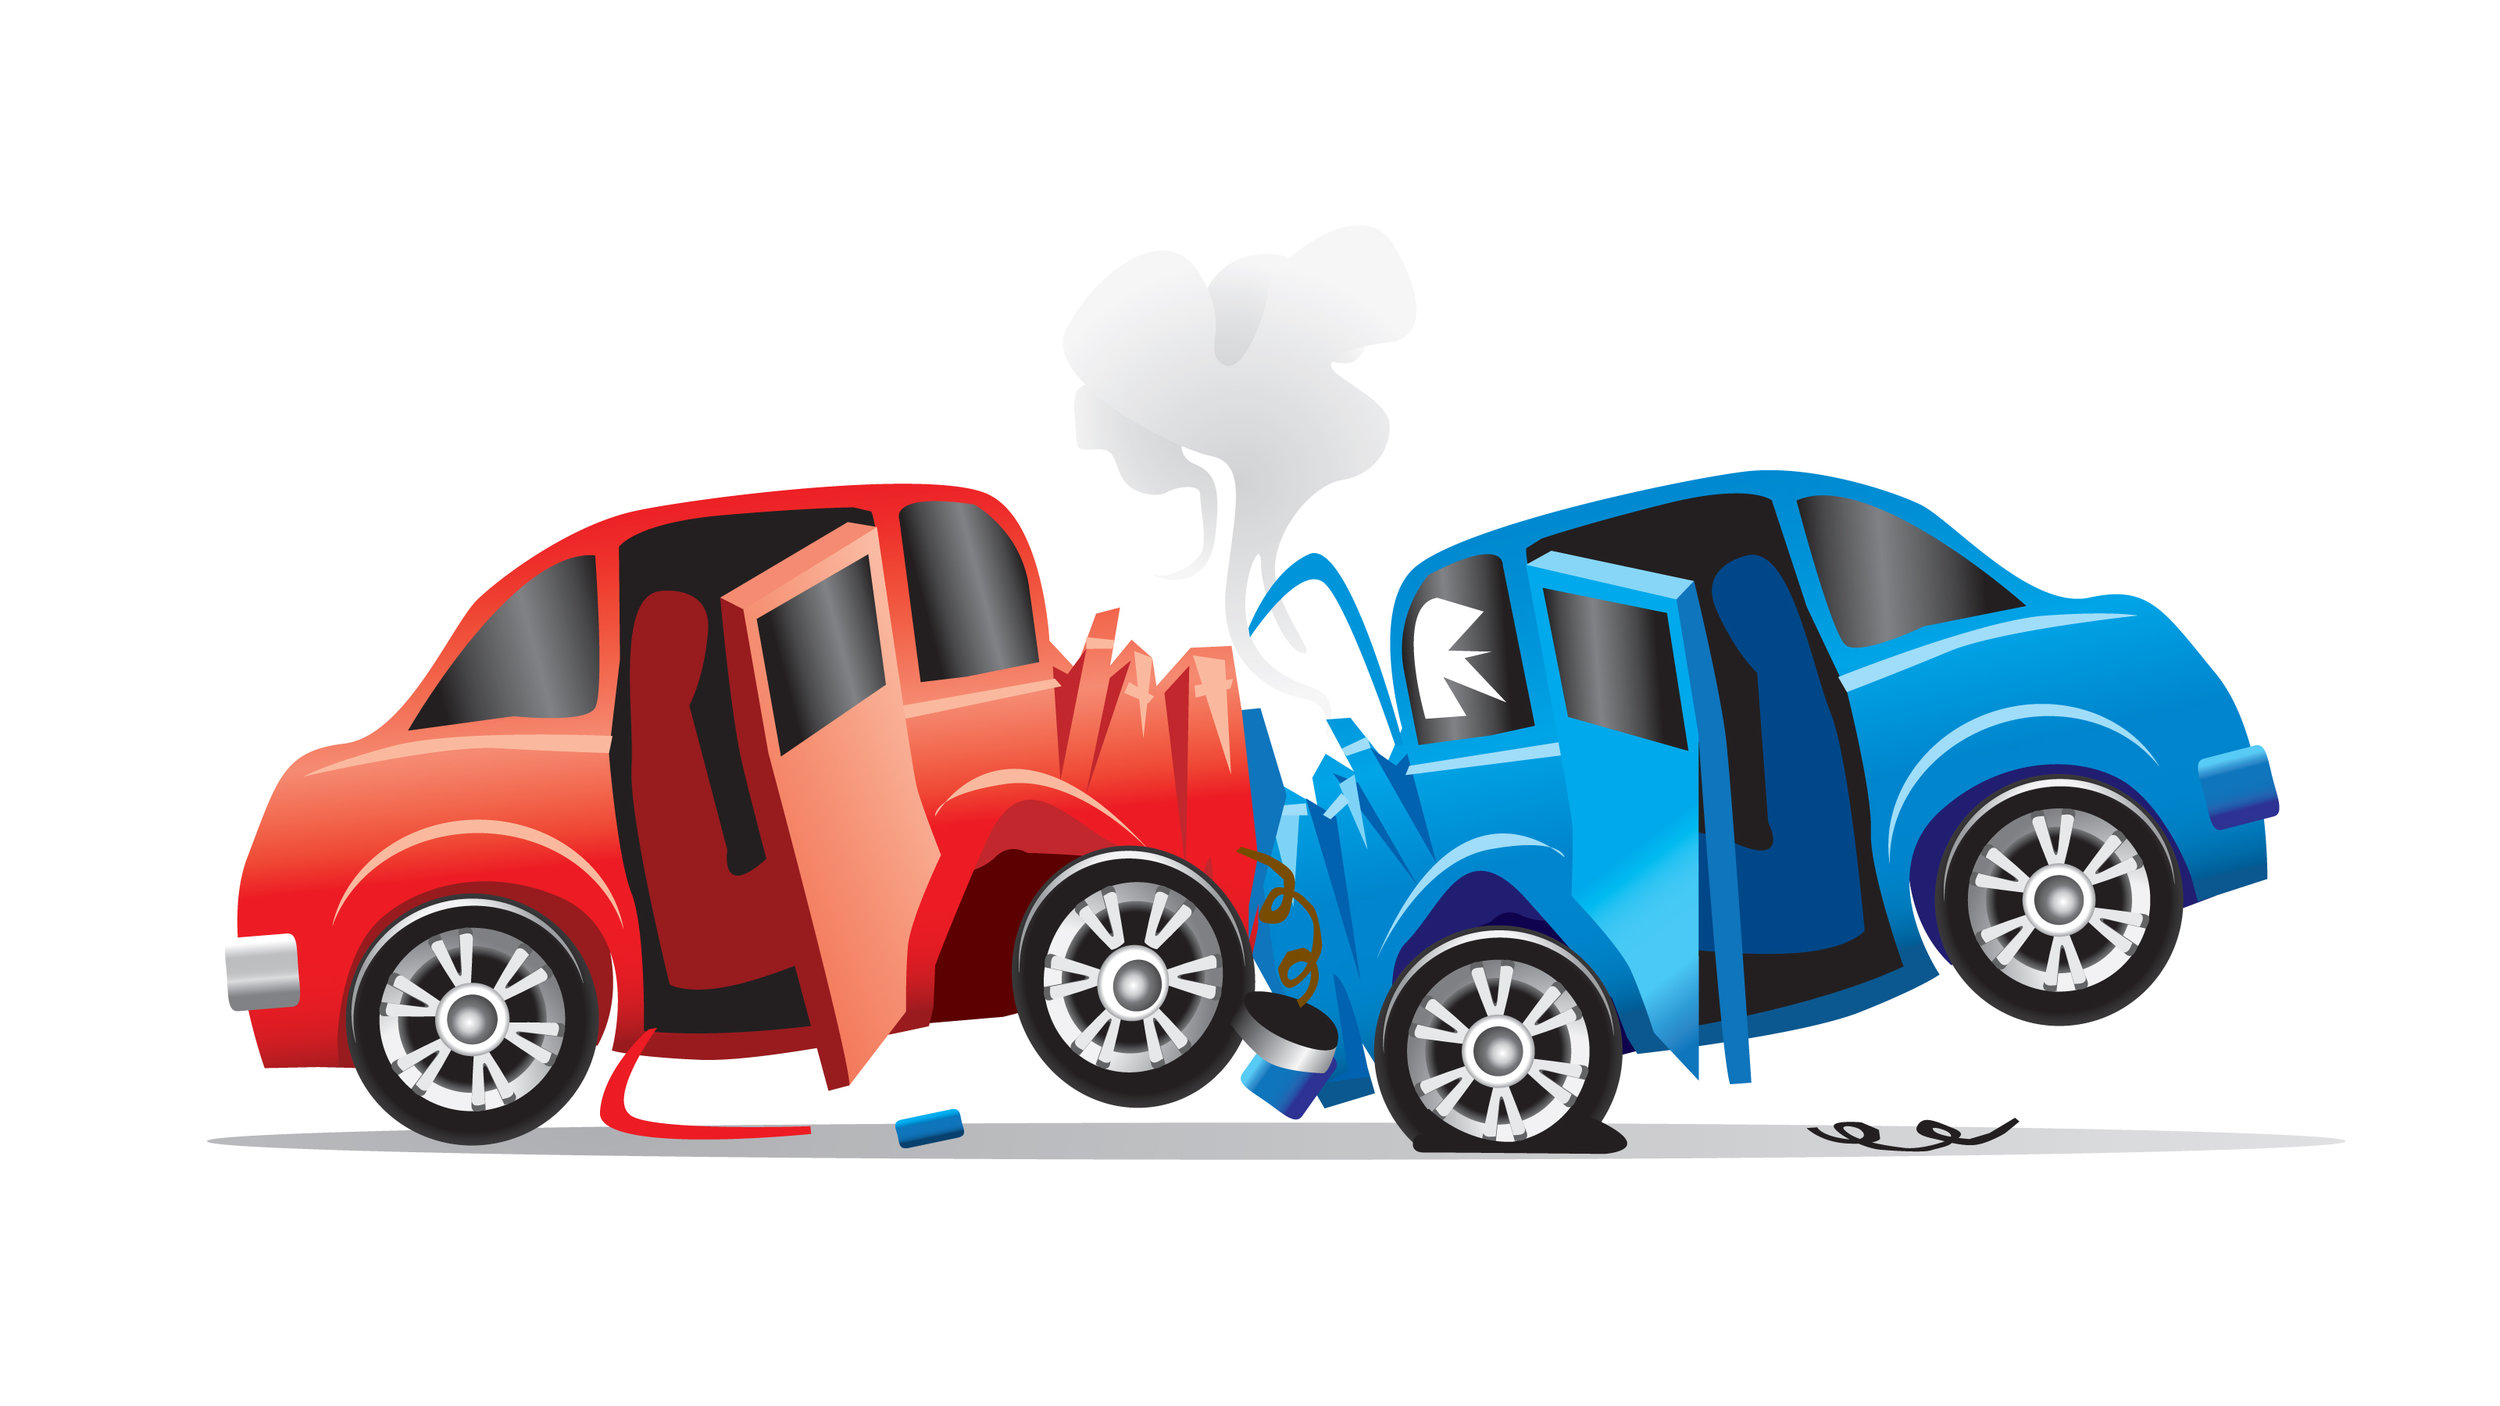 Auto Insurance - The protection that Car Insurance gives you the financial backing in case of an accident and theft occurs on or off the road.